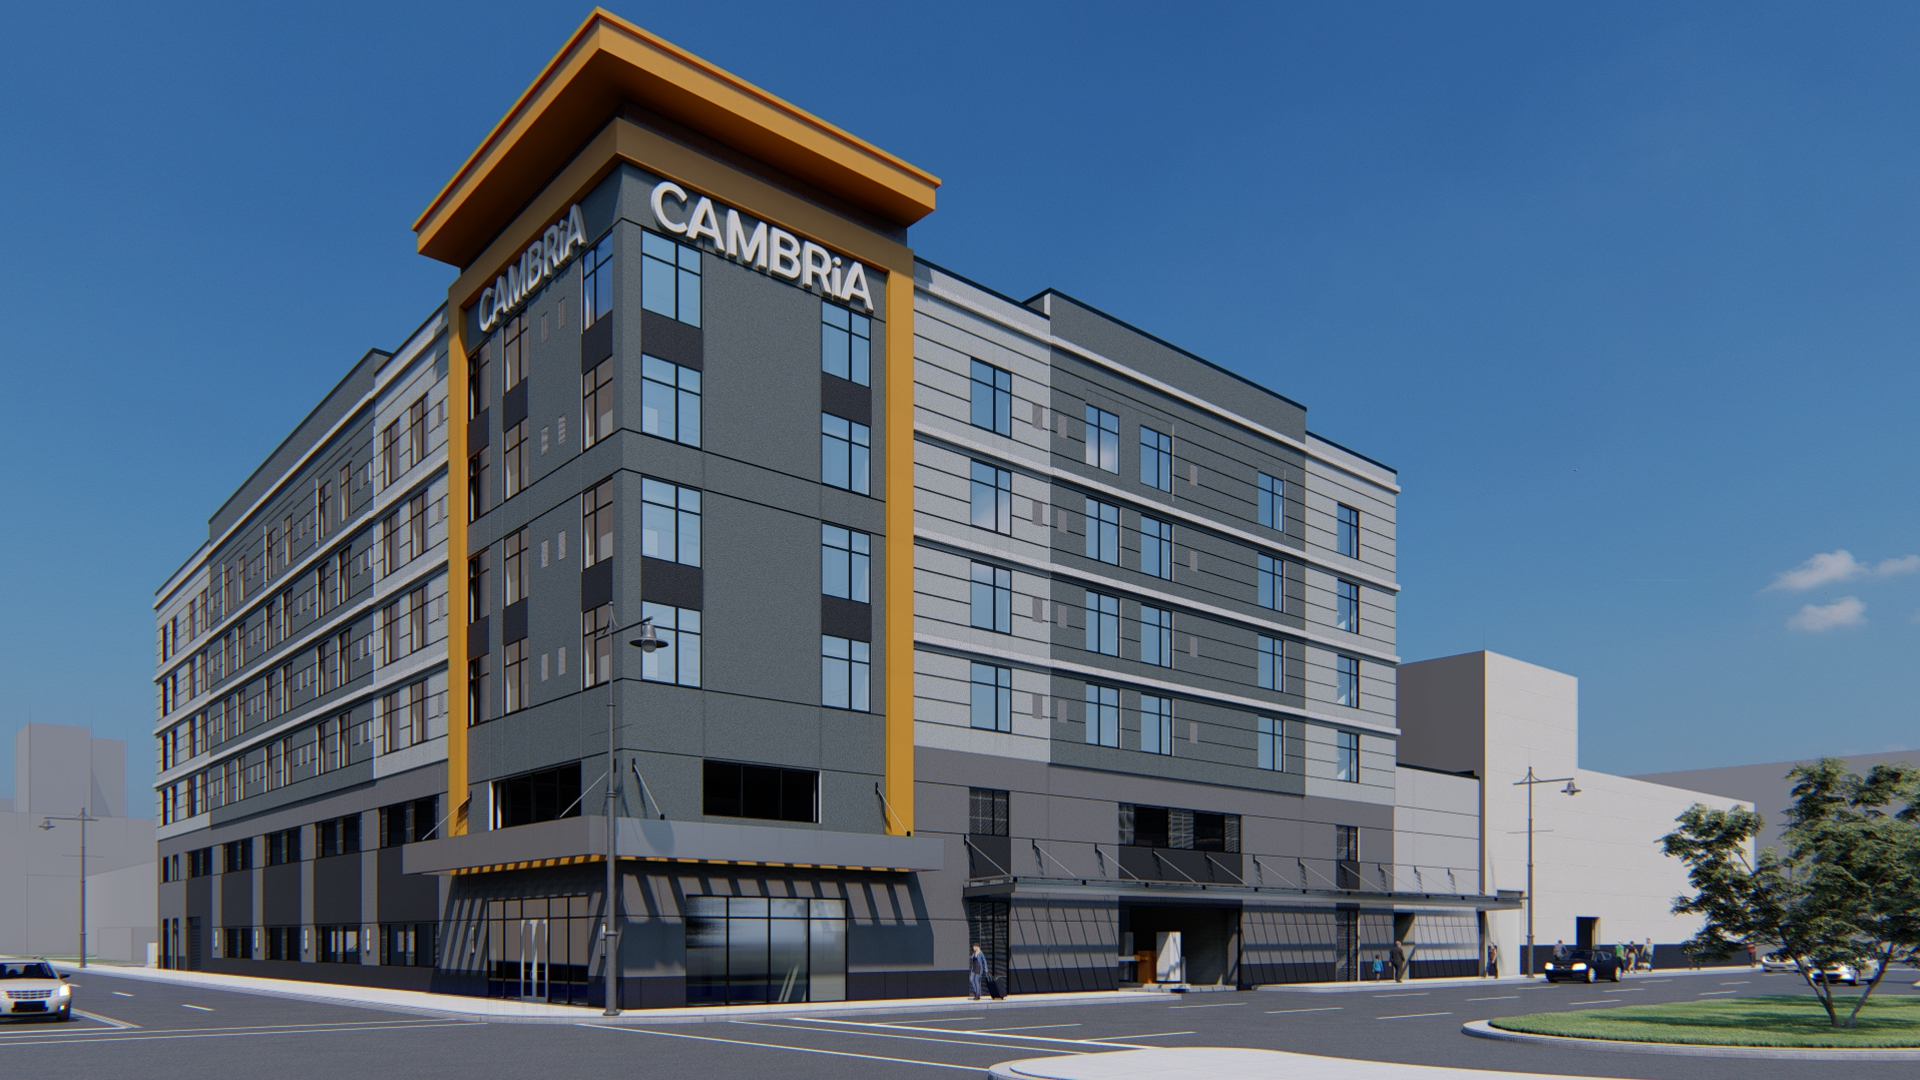 New Cambria Hotel Project in Detroit